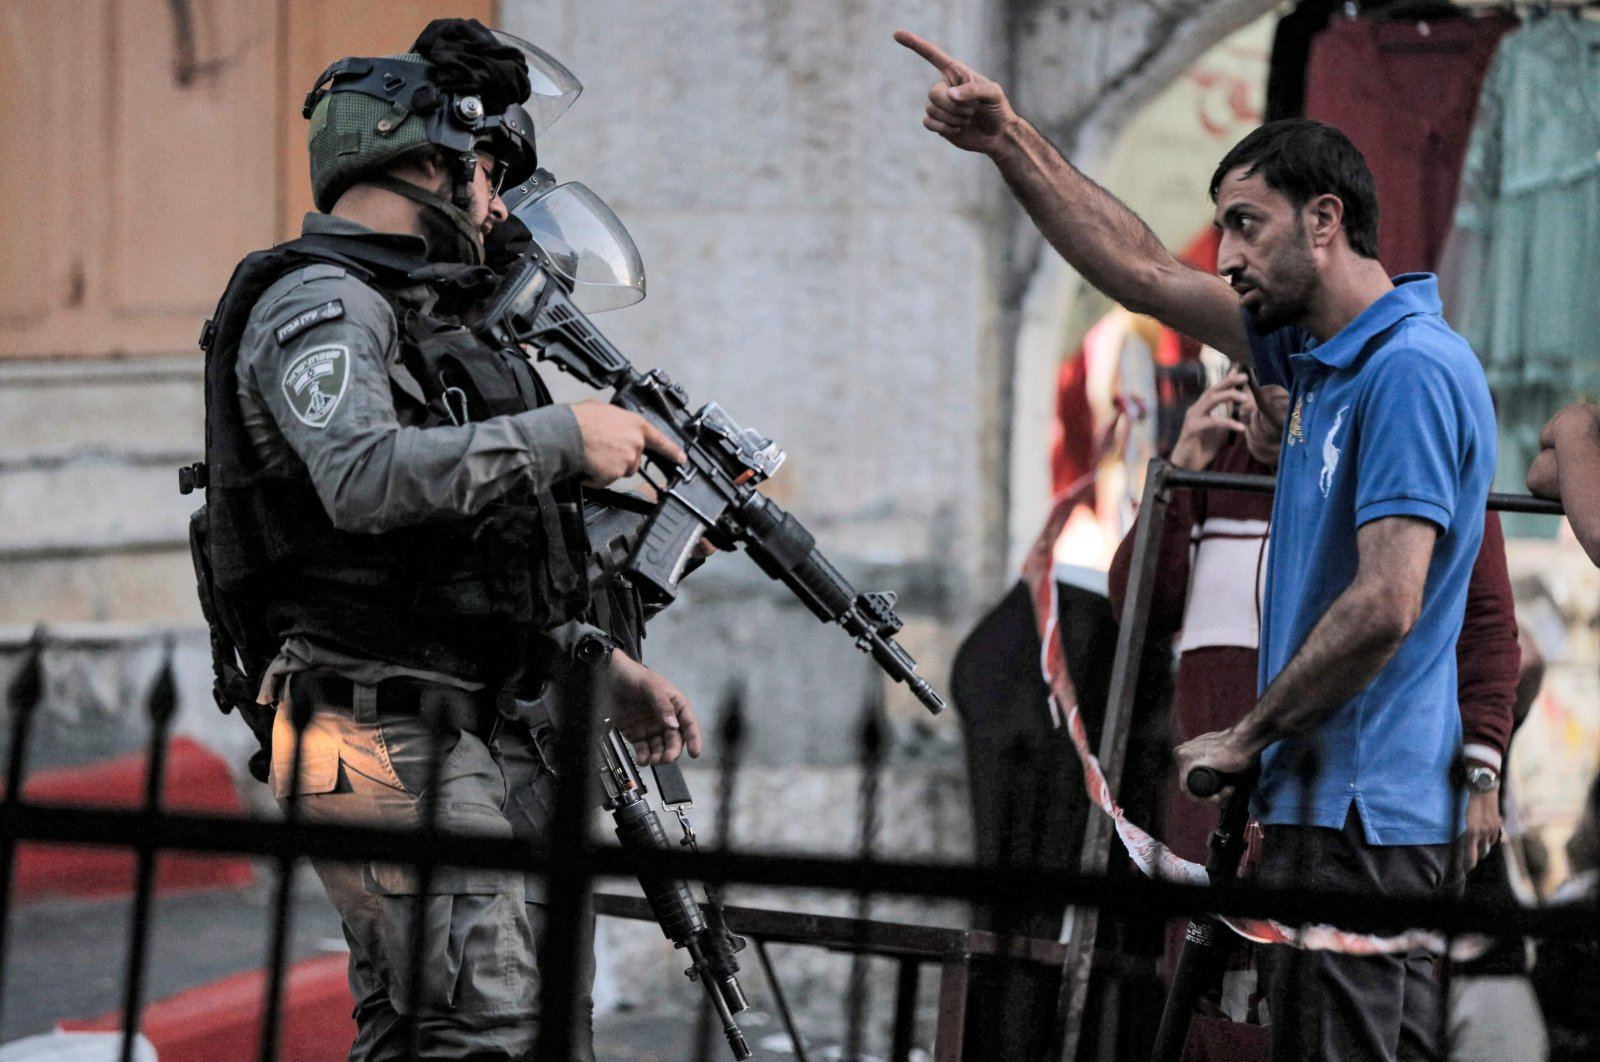 A Palestinian man argues with Israeli border guards blocking a street for a procession of Israelis on Tisha B'Av marching towards the shrine of Atnaeil Ben Kinaz in the flashpoint city of Hebron in the occupied West Bank, Palestine, June 18, 2021. (AFP Photo)